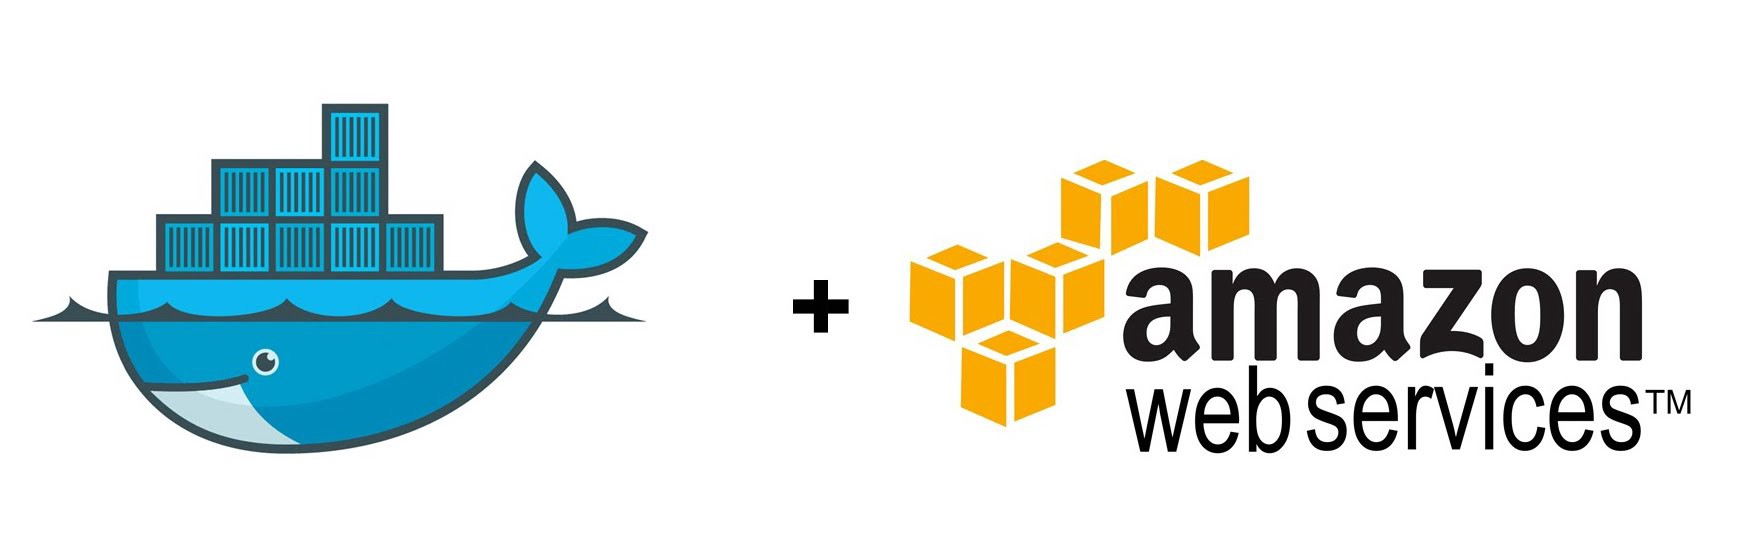 Deploying Containers on Amazon's ECS using Fargate and Terraform: Part 1